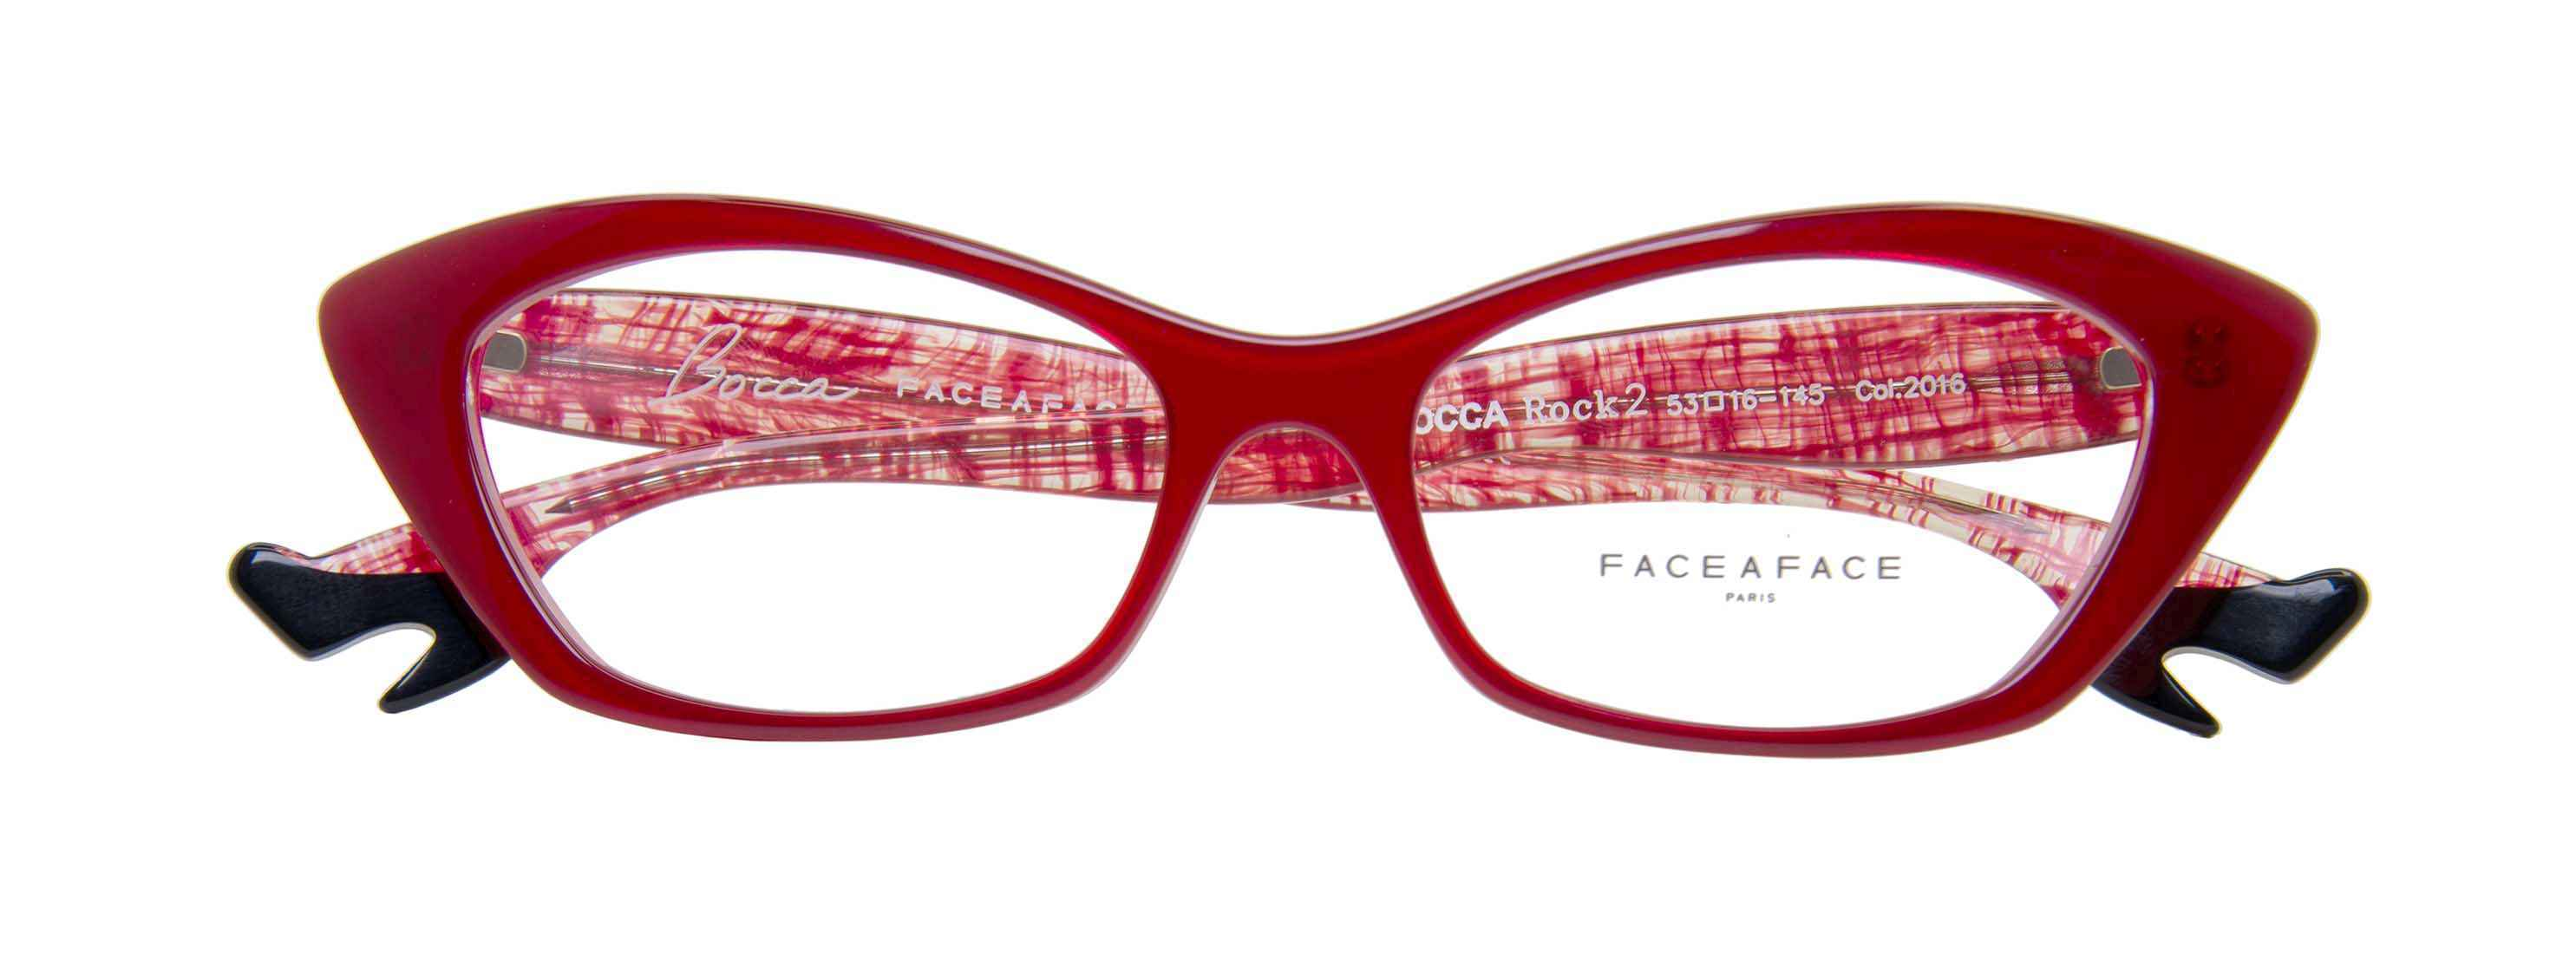 FACE A FACE spectacles: Bocca Rock 2